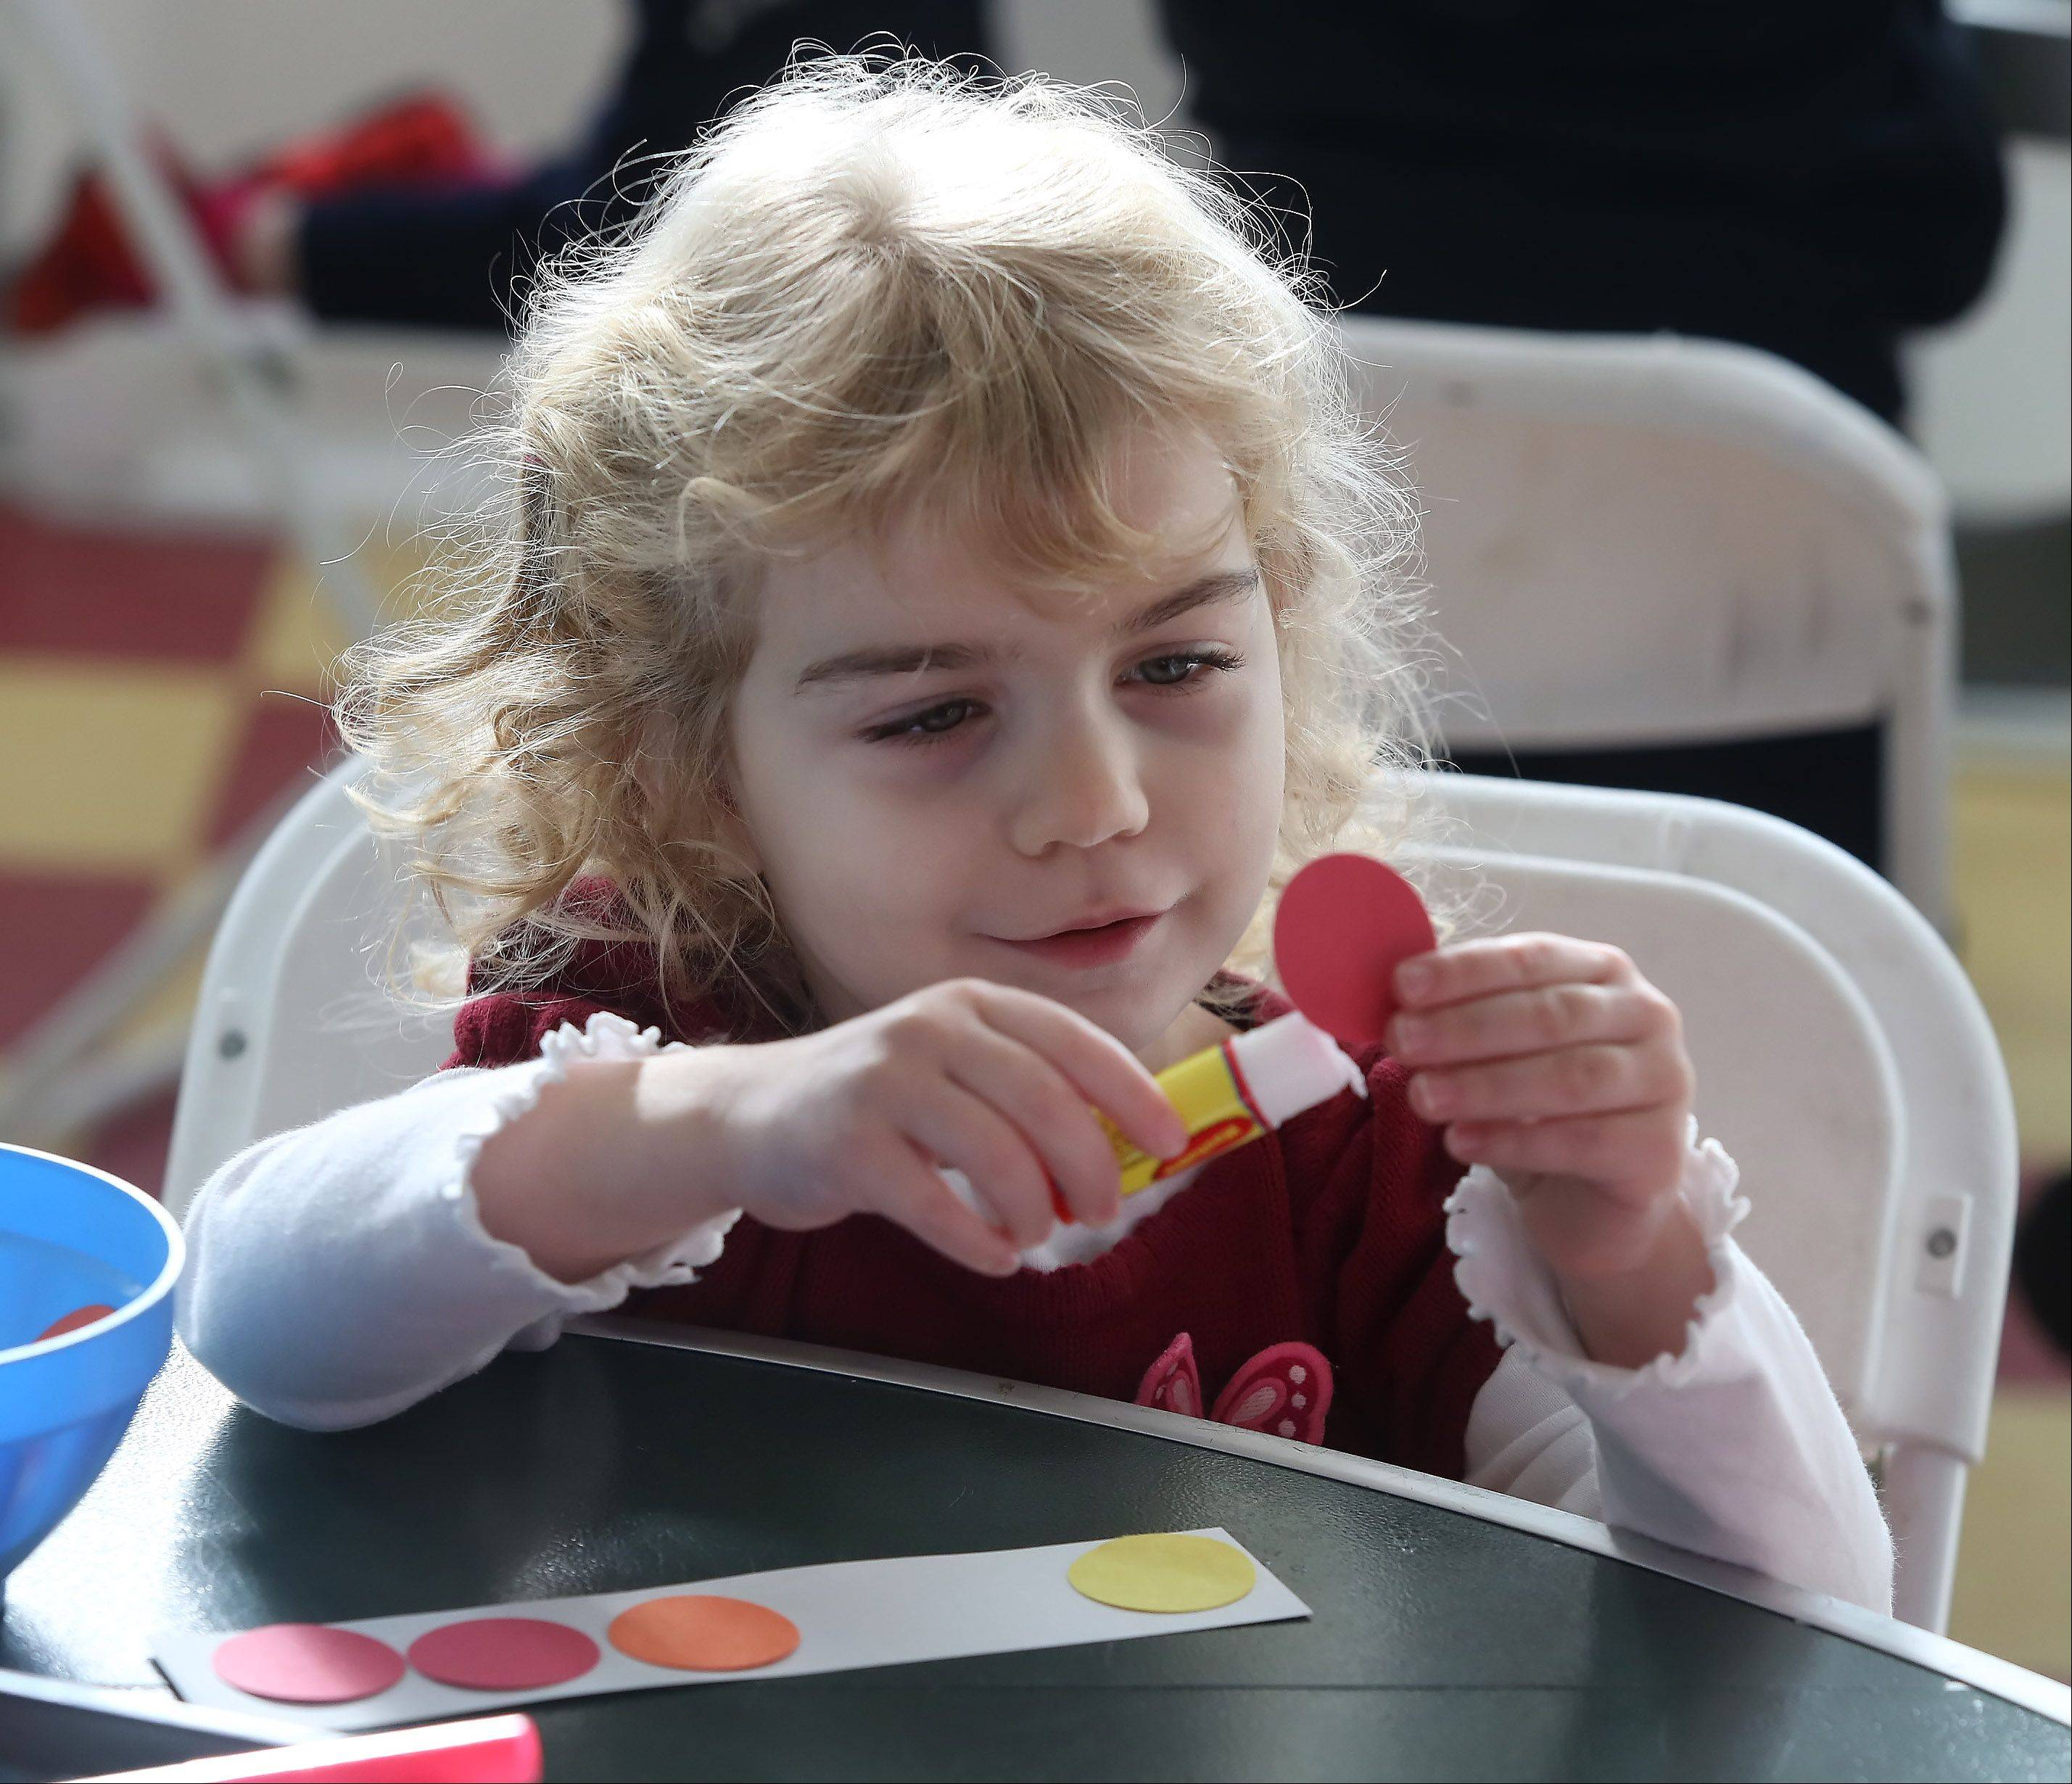 Stephanie Johnson, 4, of Lake Zurich, uses circle shapes to make a ladybug bookmark during the Colorful Creatures program Wednesday at the Lake County Discovery Museum near Wauconda. The Small Discoveries event focused on shapes and nature and coincided with the artwork exhibit of Charles Harper.